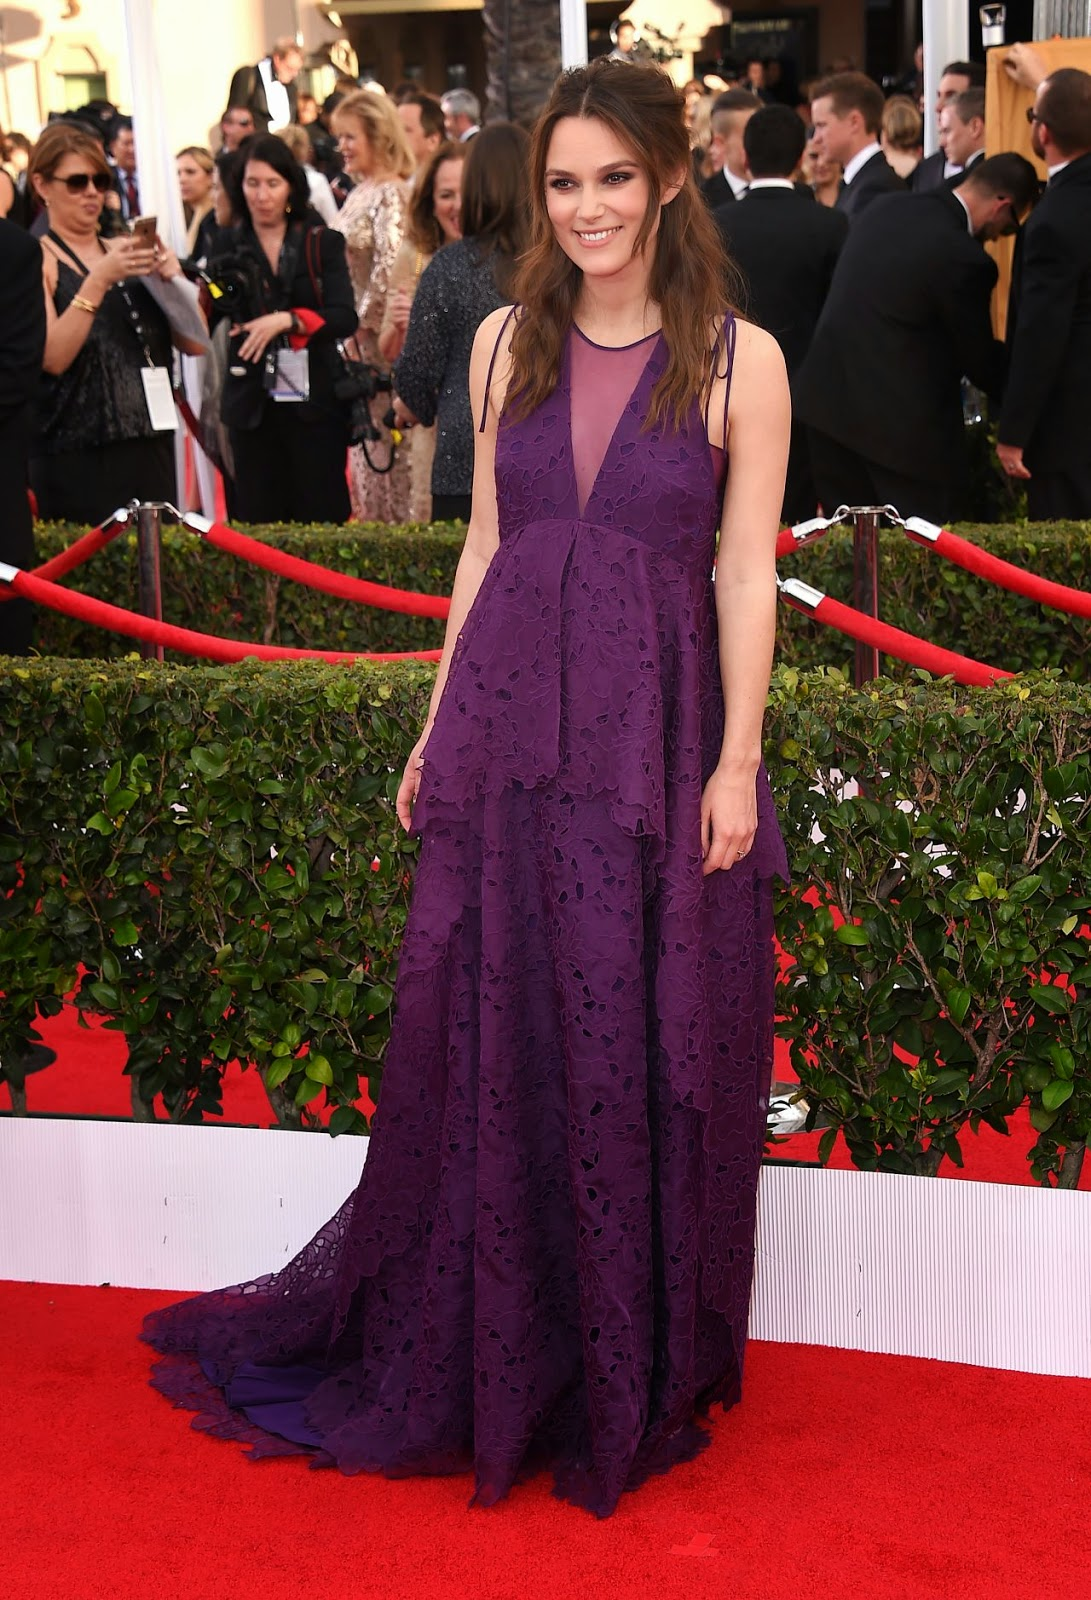 Keira Knightley wears a purple Erdem dress at the 21st Annual SAG Awards in LA